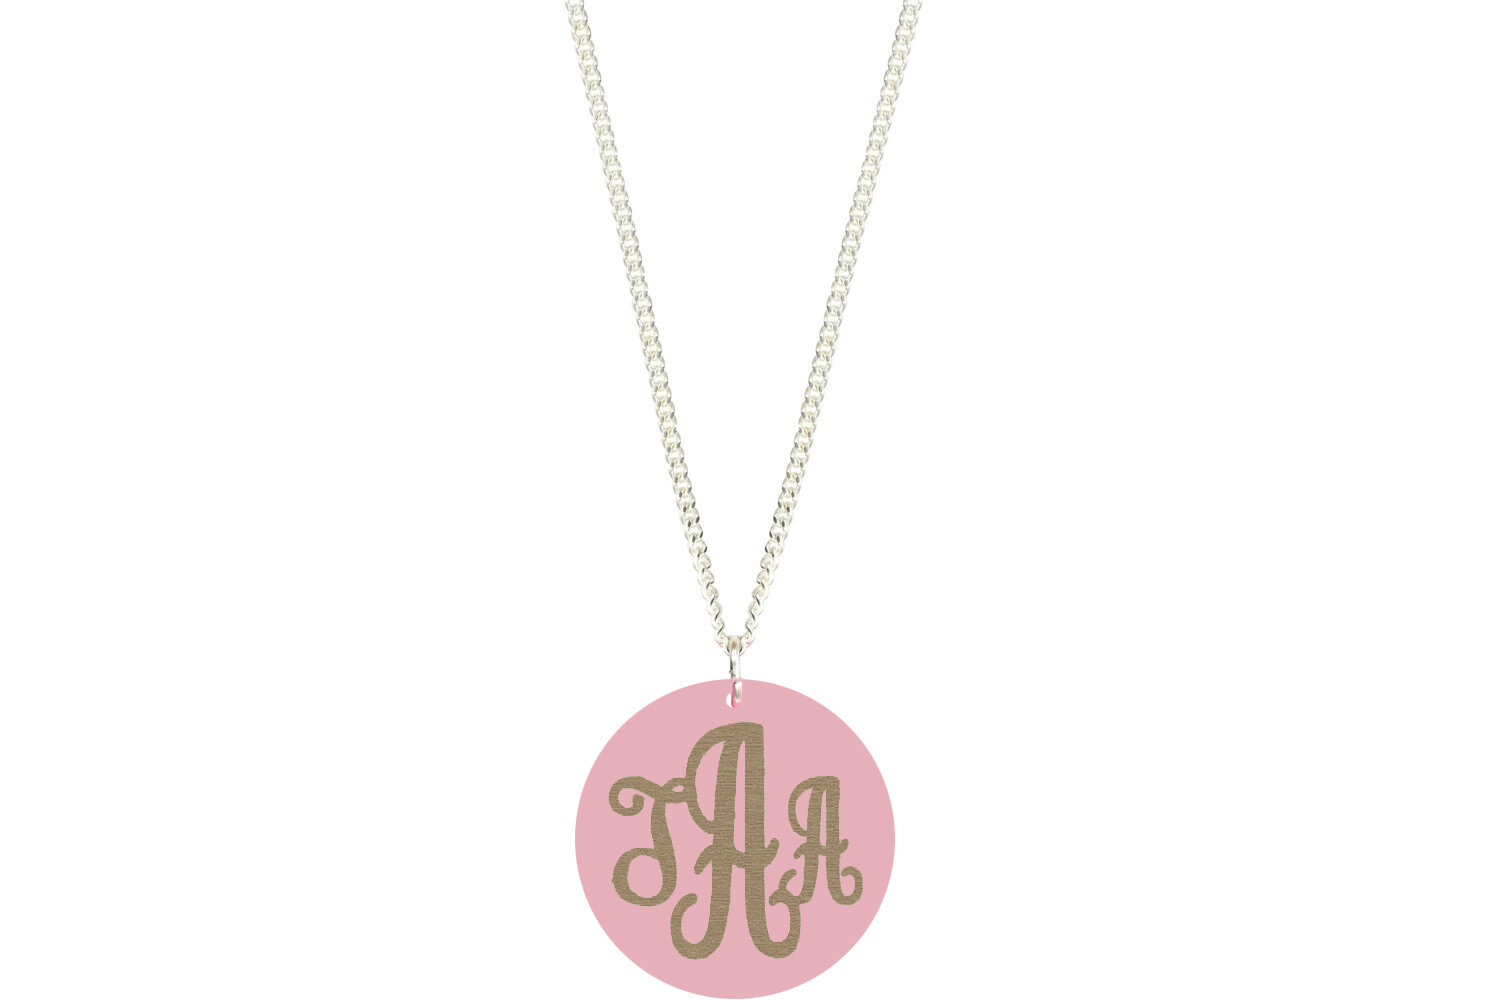 645cebff59 Traditional Monogram with Chain Necklace